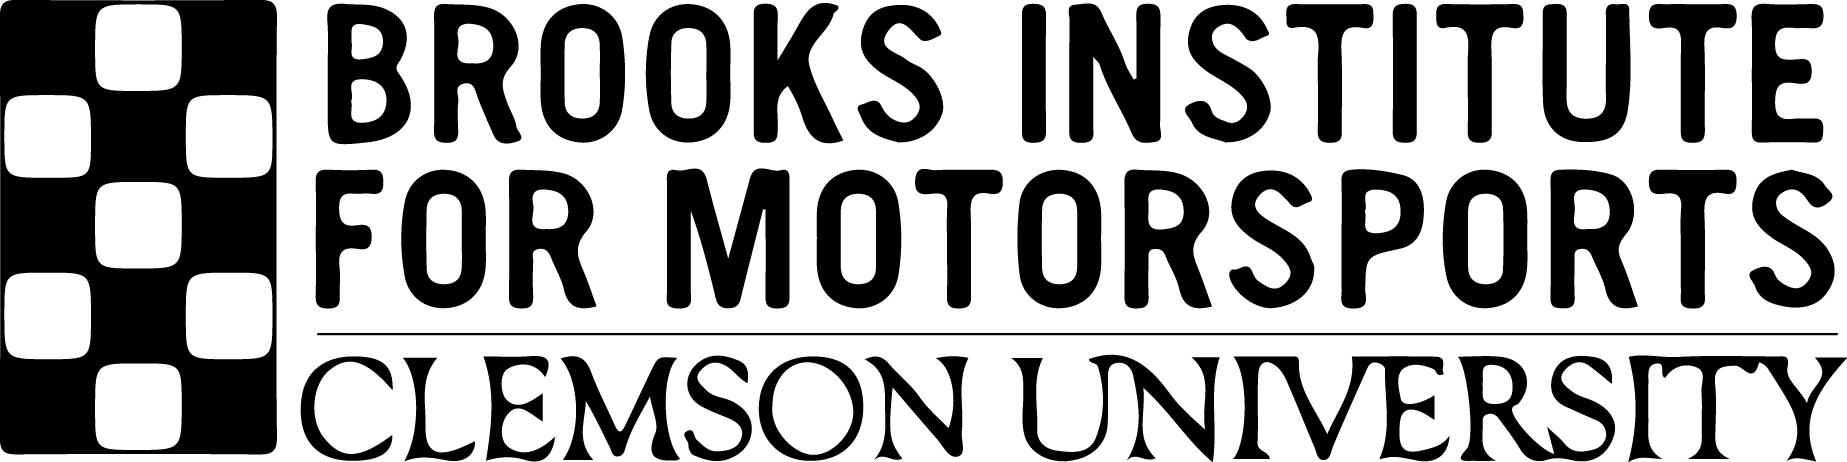 Brooks Institute for Motorsports.png